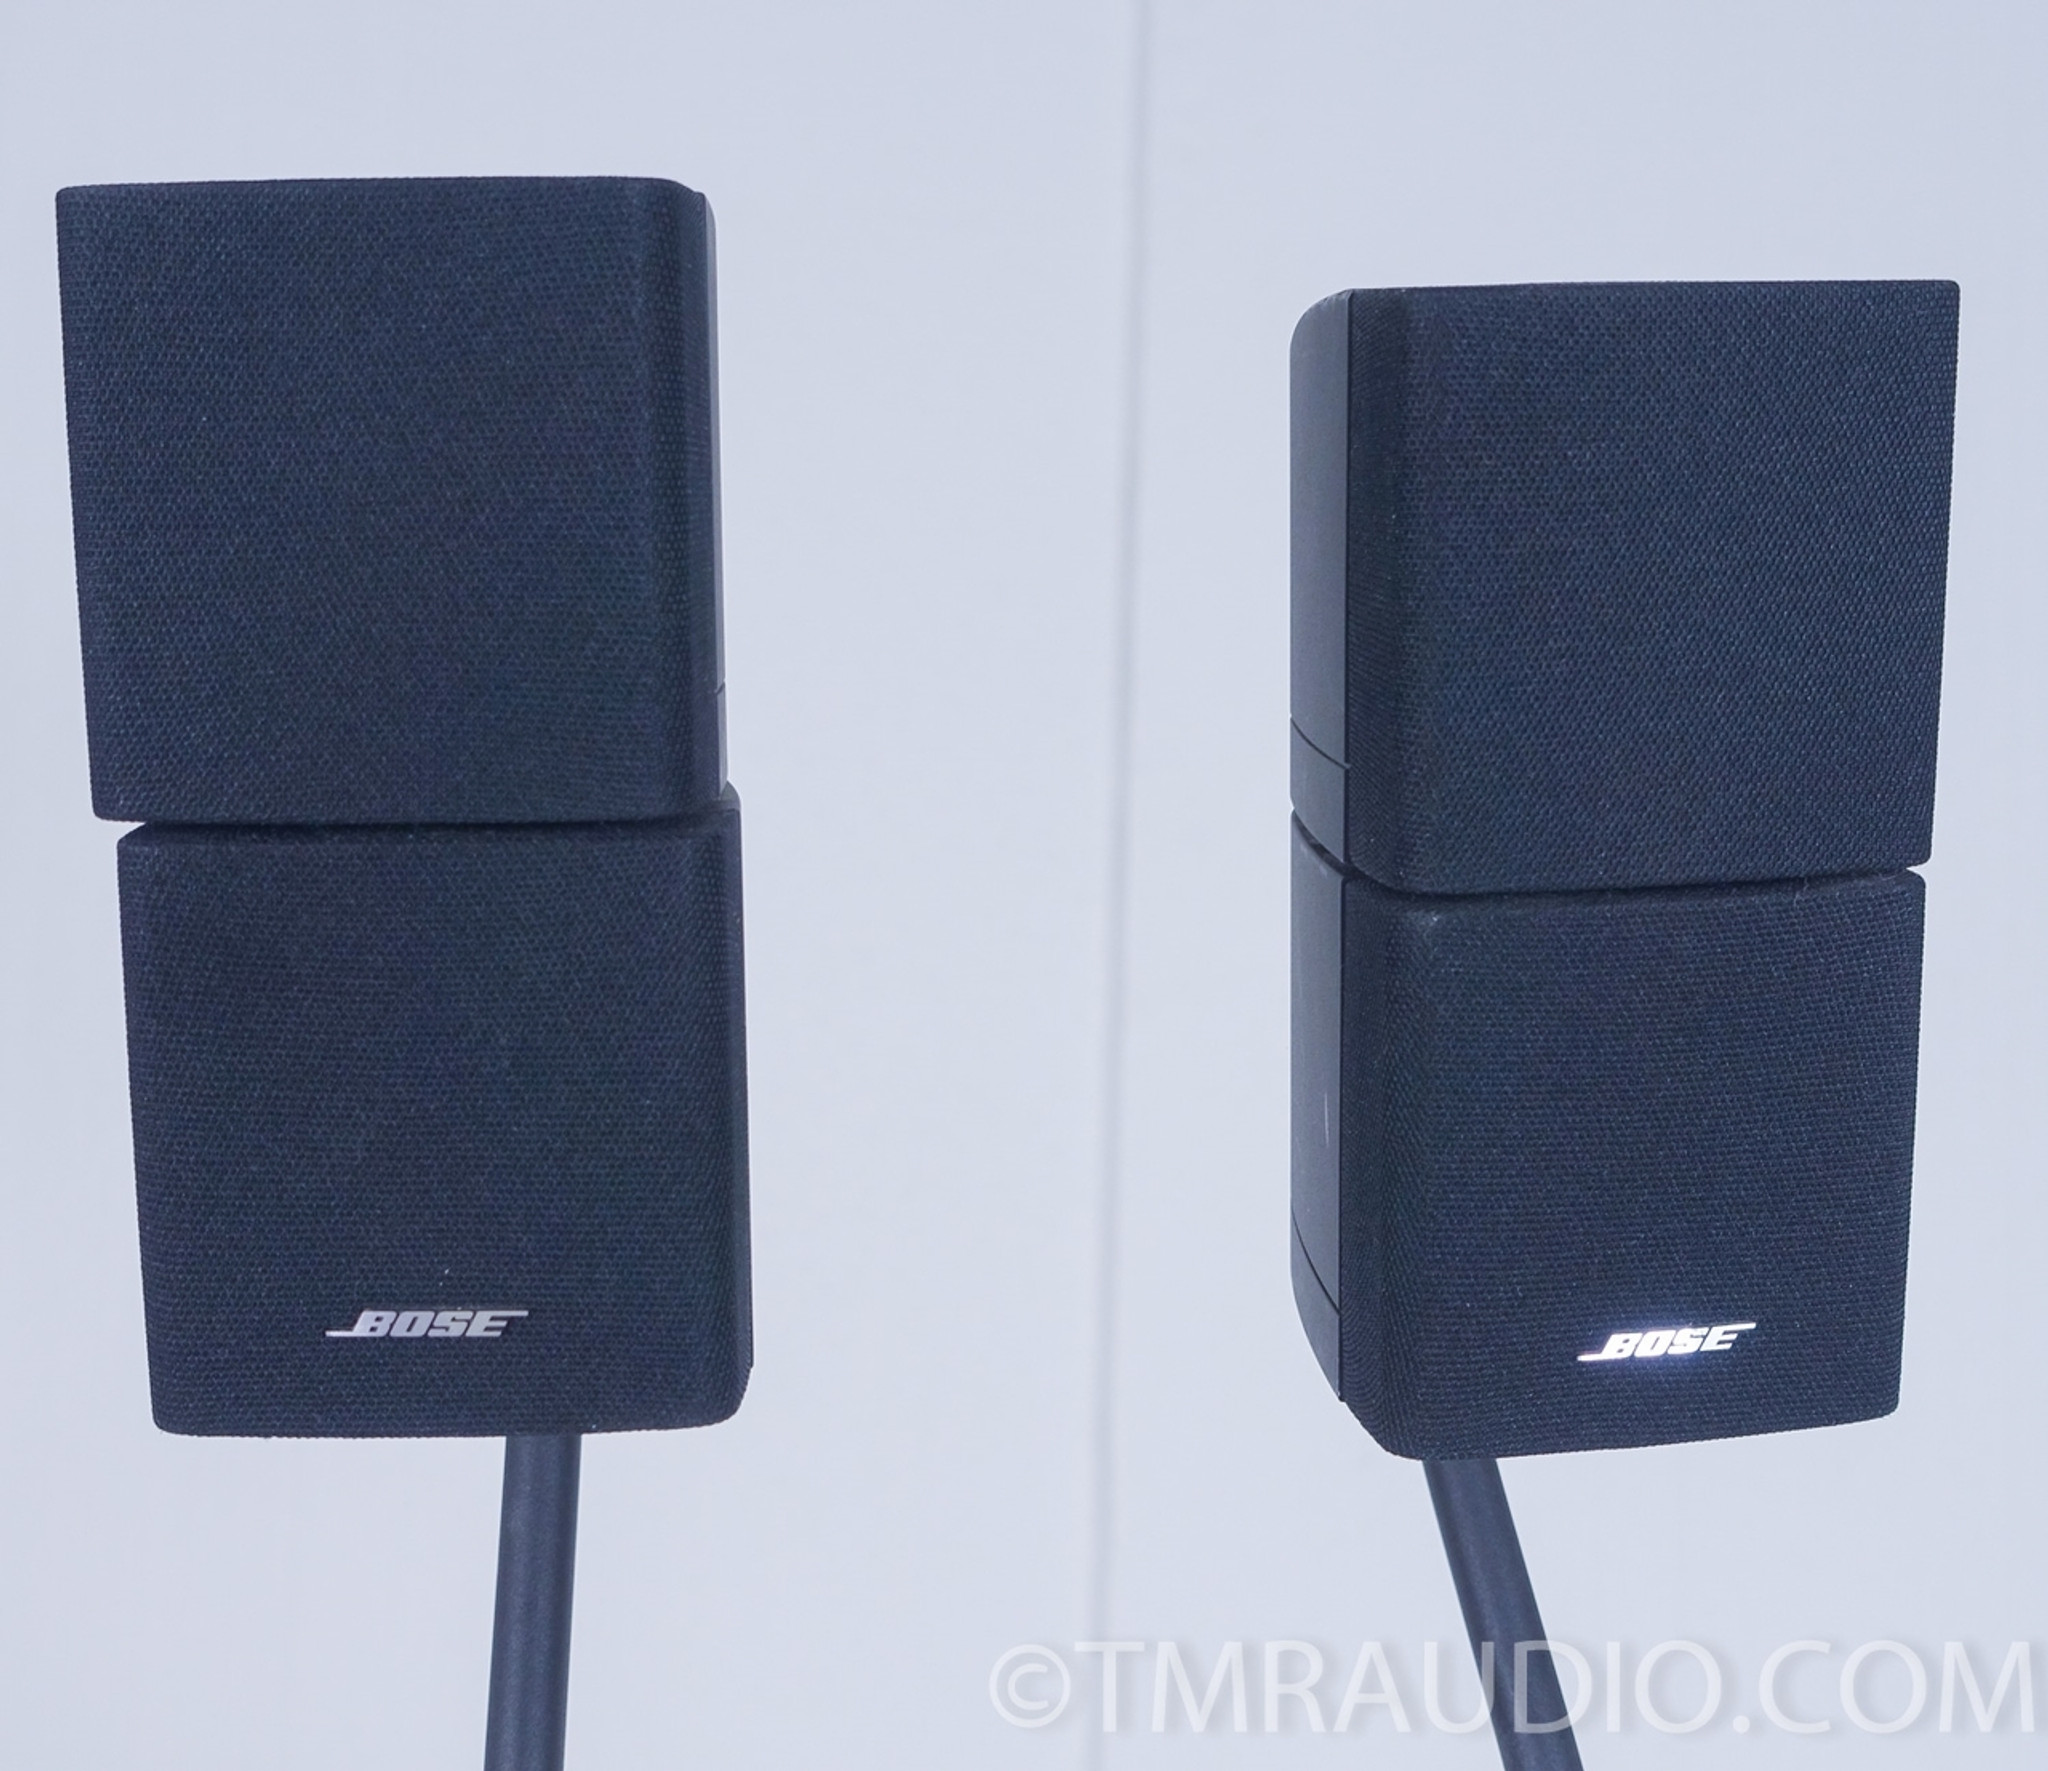 Bose Acoustimass 10 Series III Speaker System w/ Stands